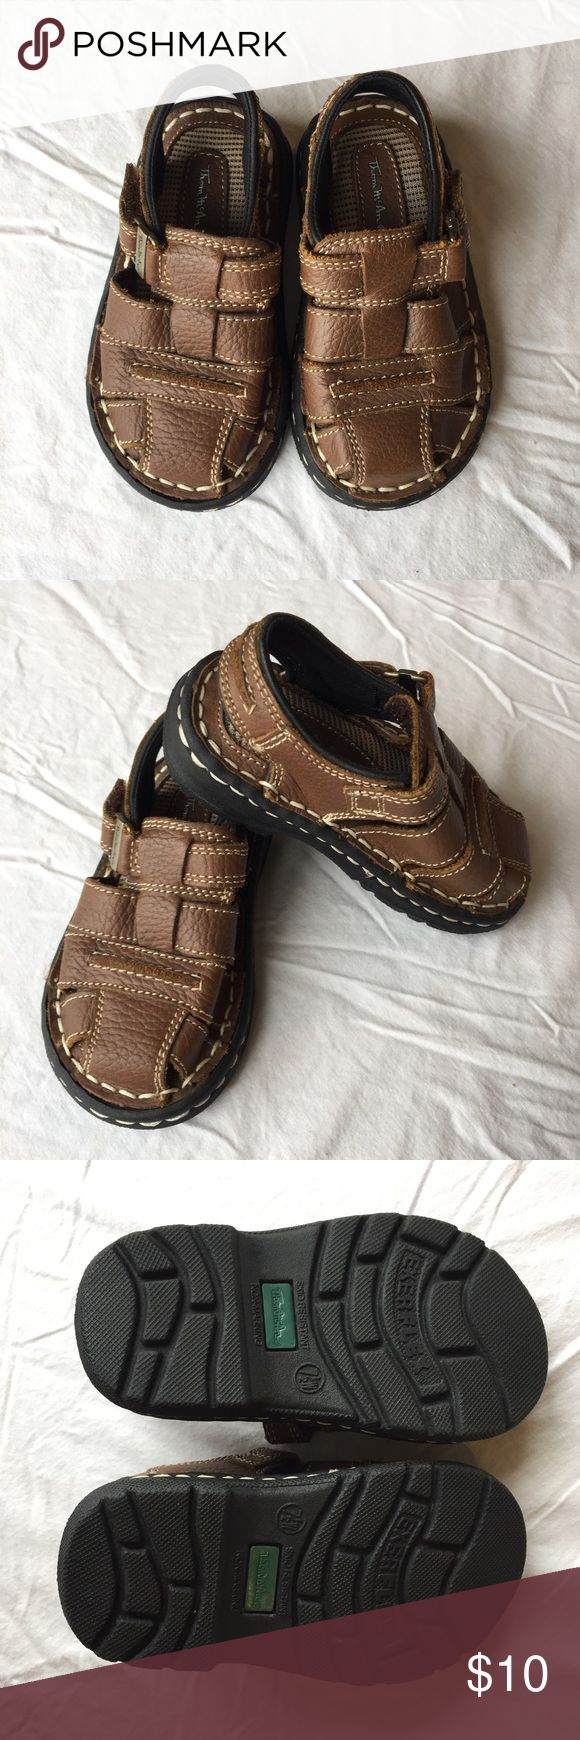 EUC Toddler Boys 7.5W sandals Thom McAn toddler boys' sandals, size 7.5W. Brown, with leather uppers. They seem to run small, so they might fit a little guy who's currently in size 6. Barely worn, like new. Thom McAn Shoes Sandals & Flip Flops